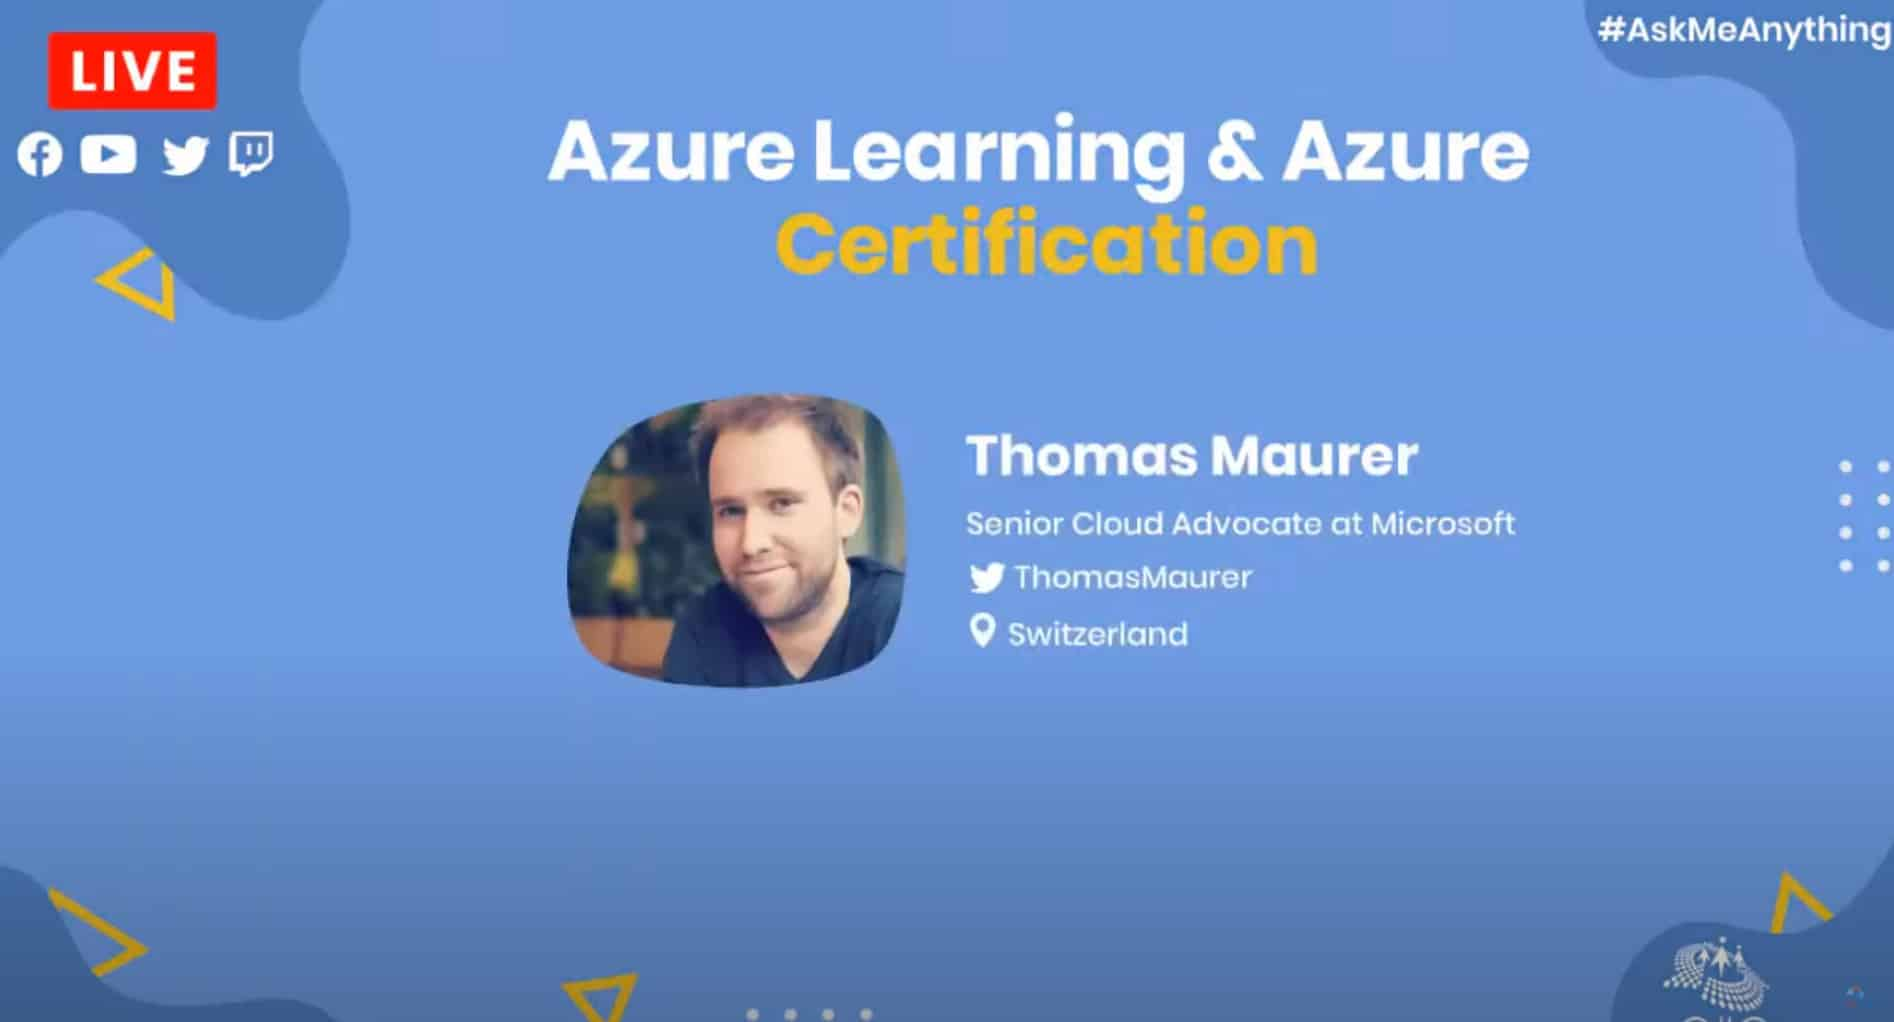 CSharp Corner Azure Learning and Azure Certification - AMA ft Thomas Maurer